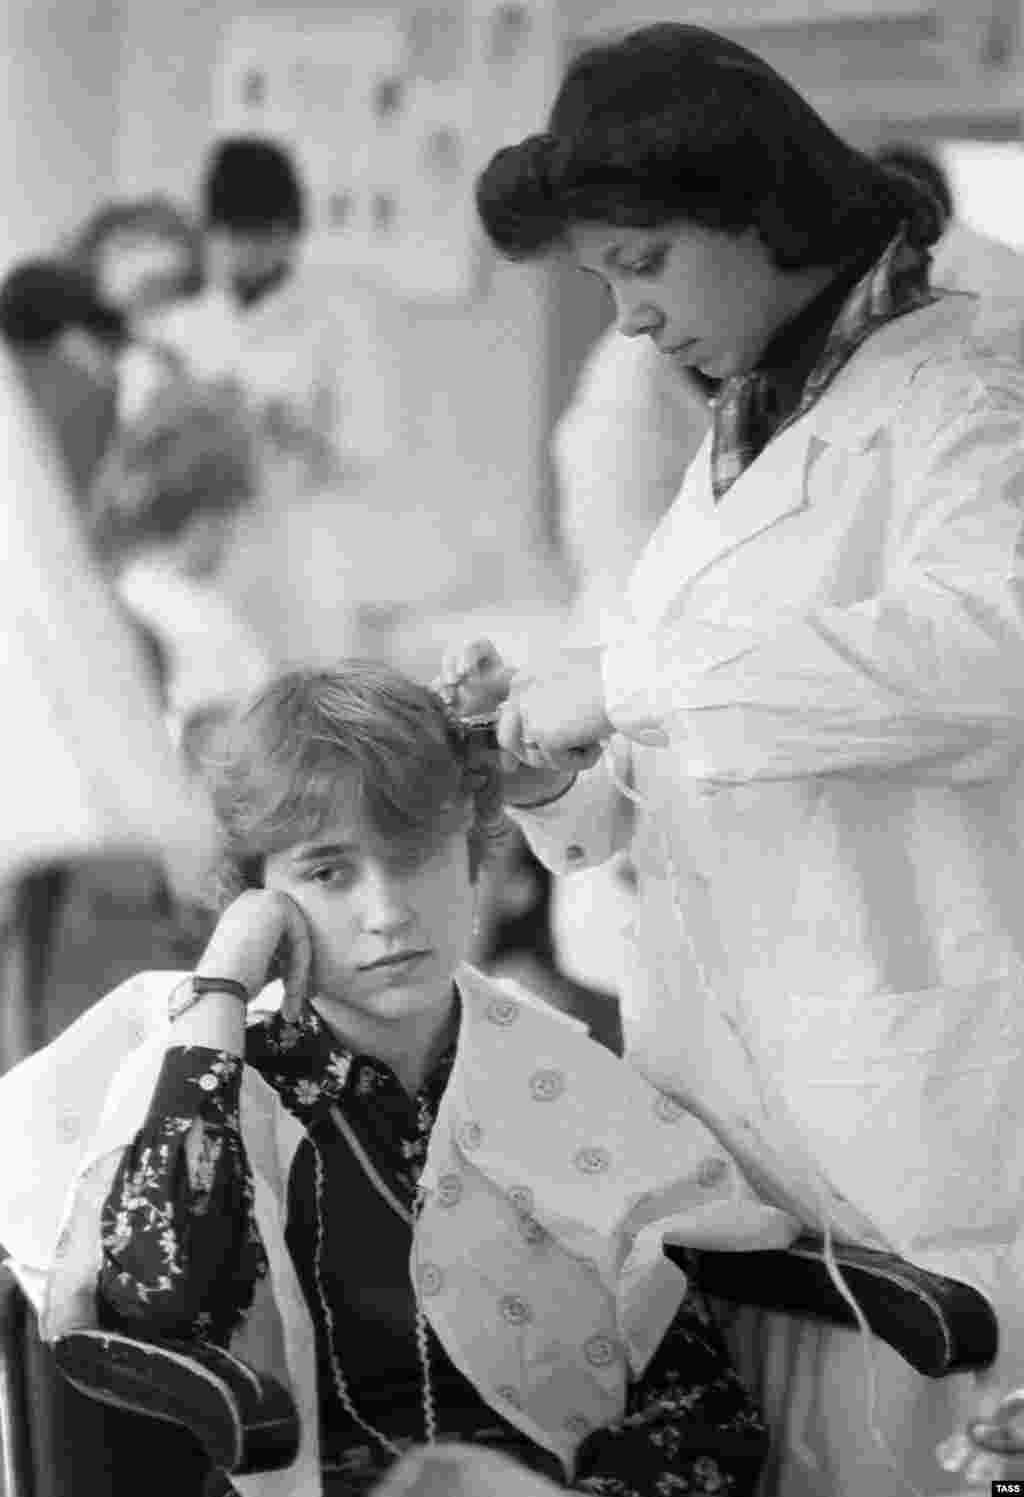 Students practice their craft at a hairdressers vocational school in 1982.